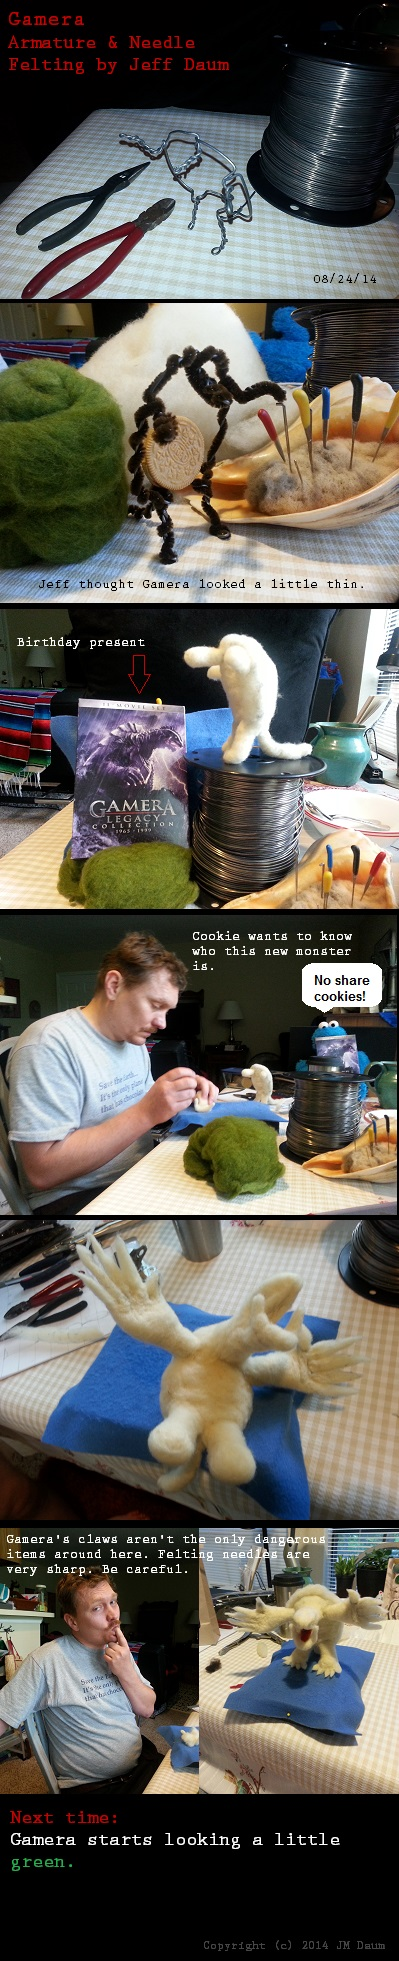 needlefelting on gamera armature work-in-progress